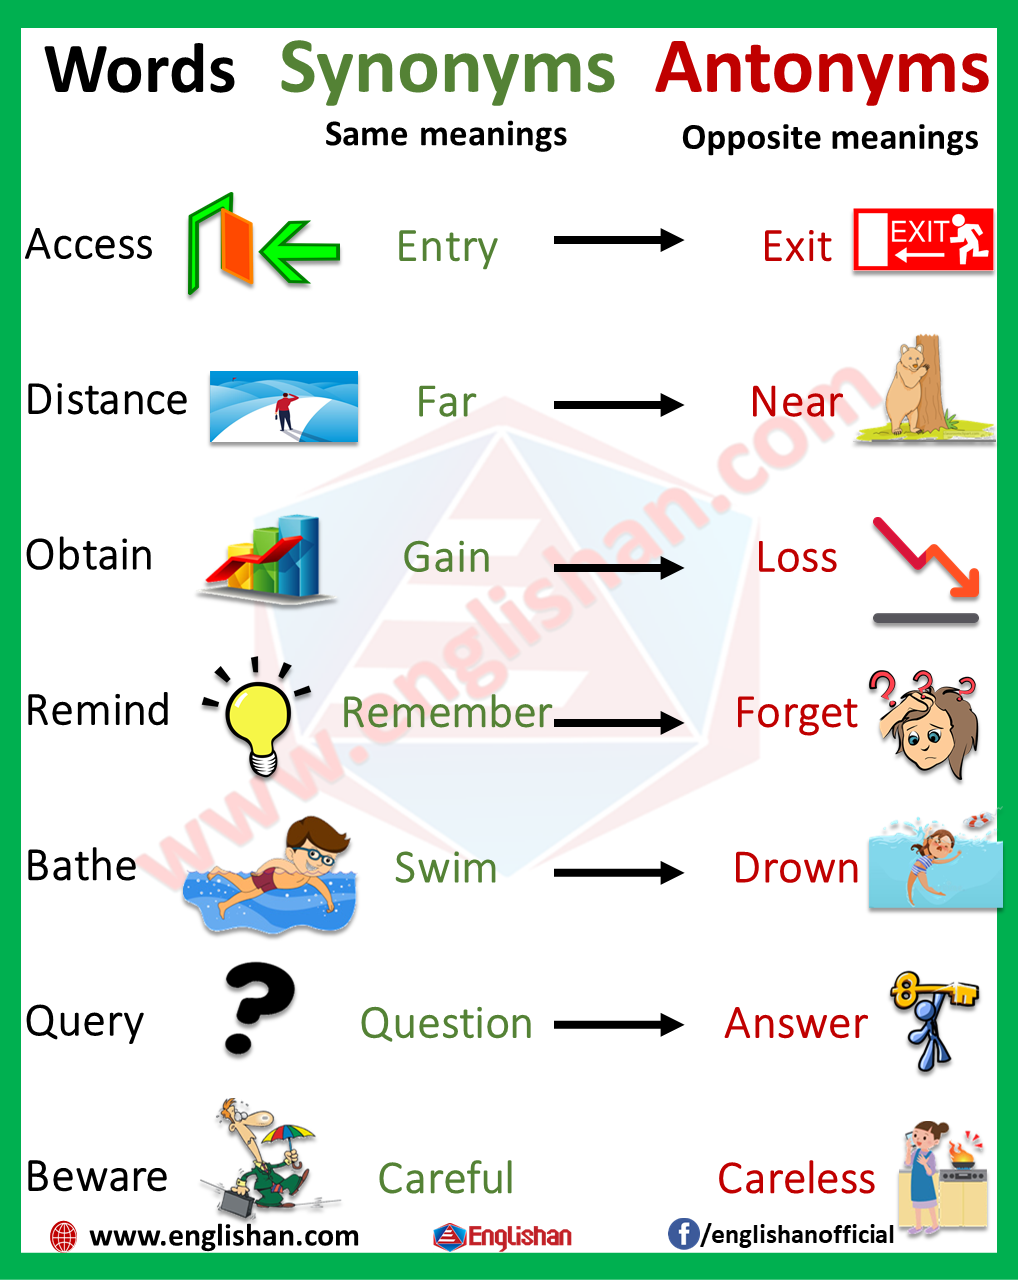 50 + Words with Synonyms and Antonyms for Kids